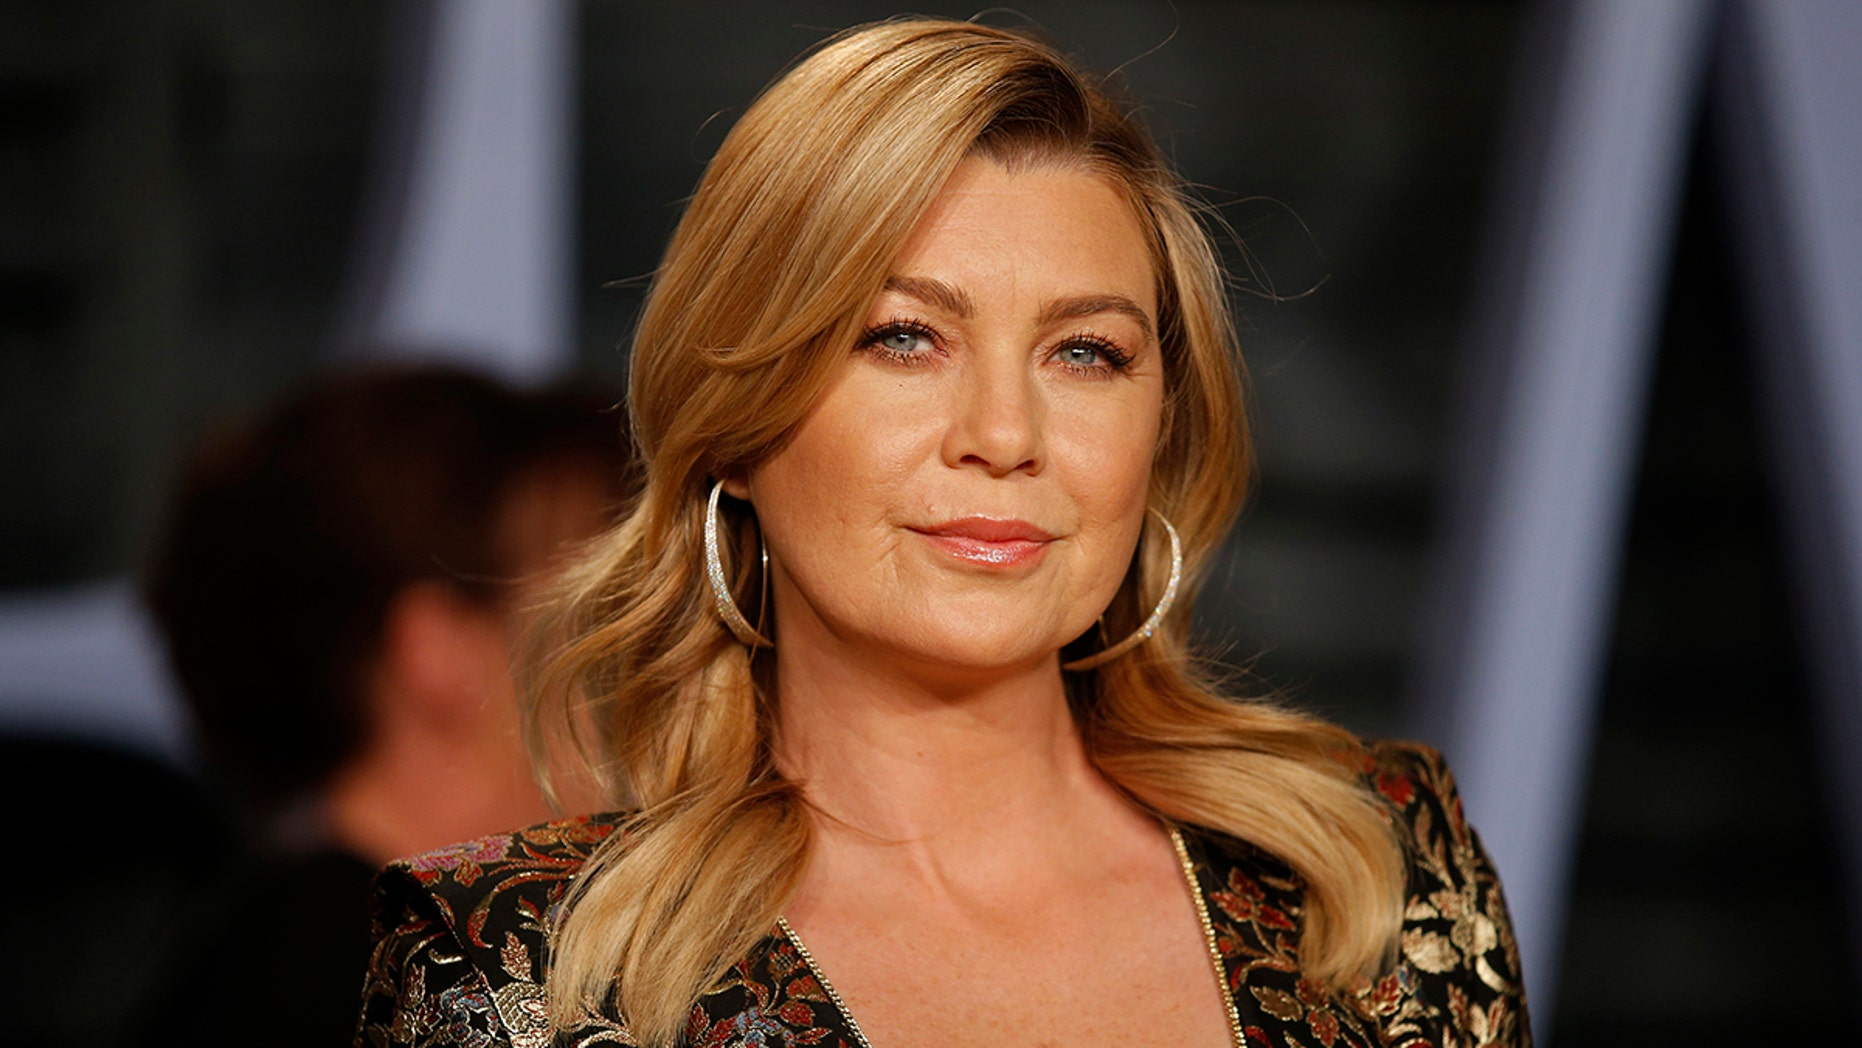 Ellen Pompeo says she lost her purse while on vacation in Italy.